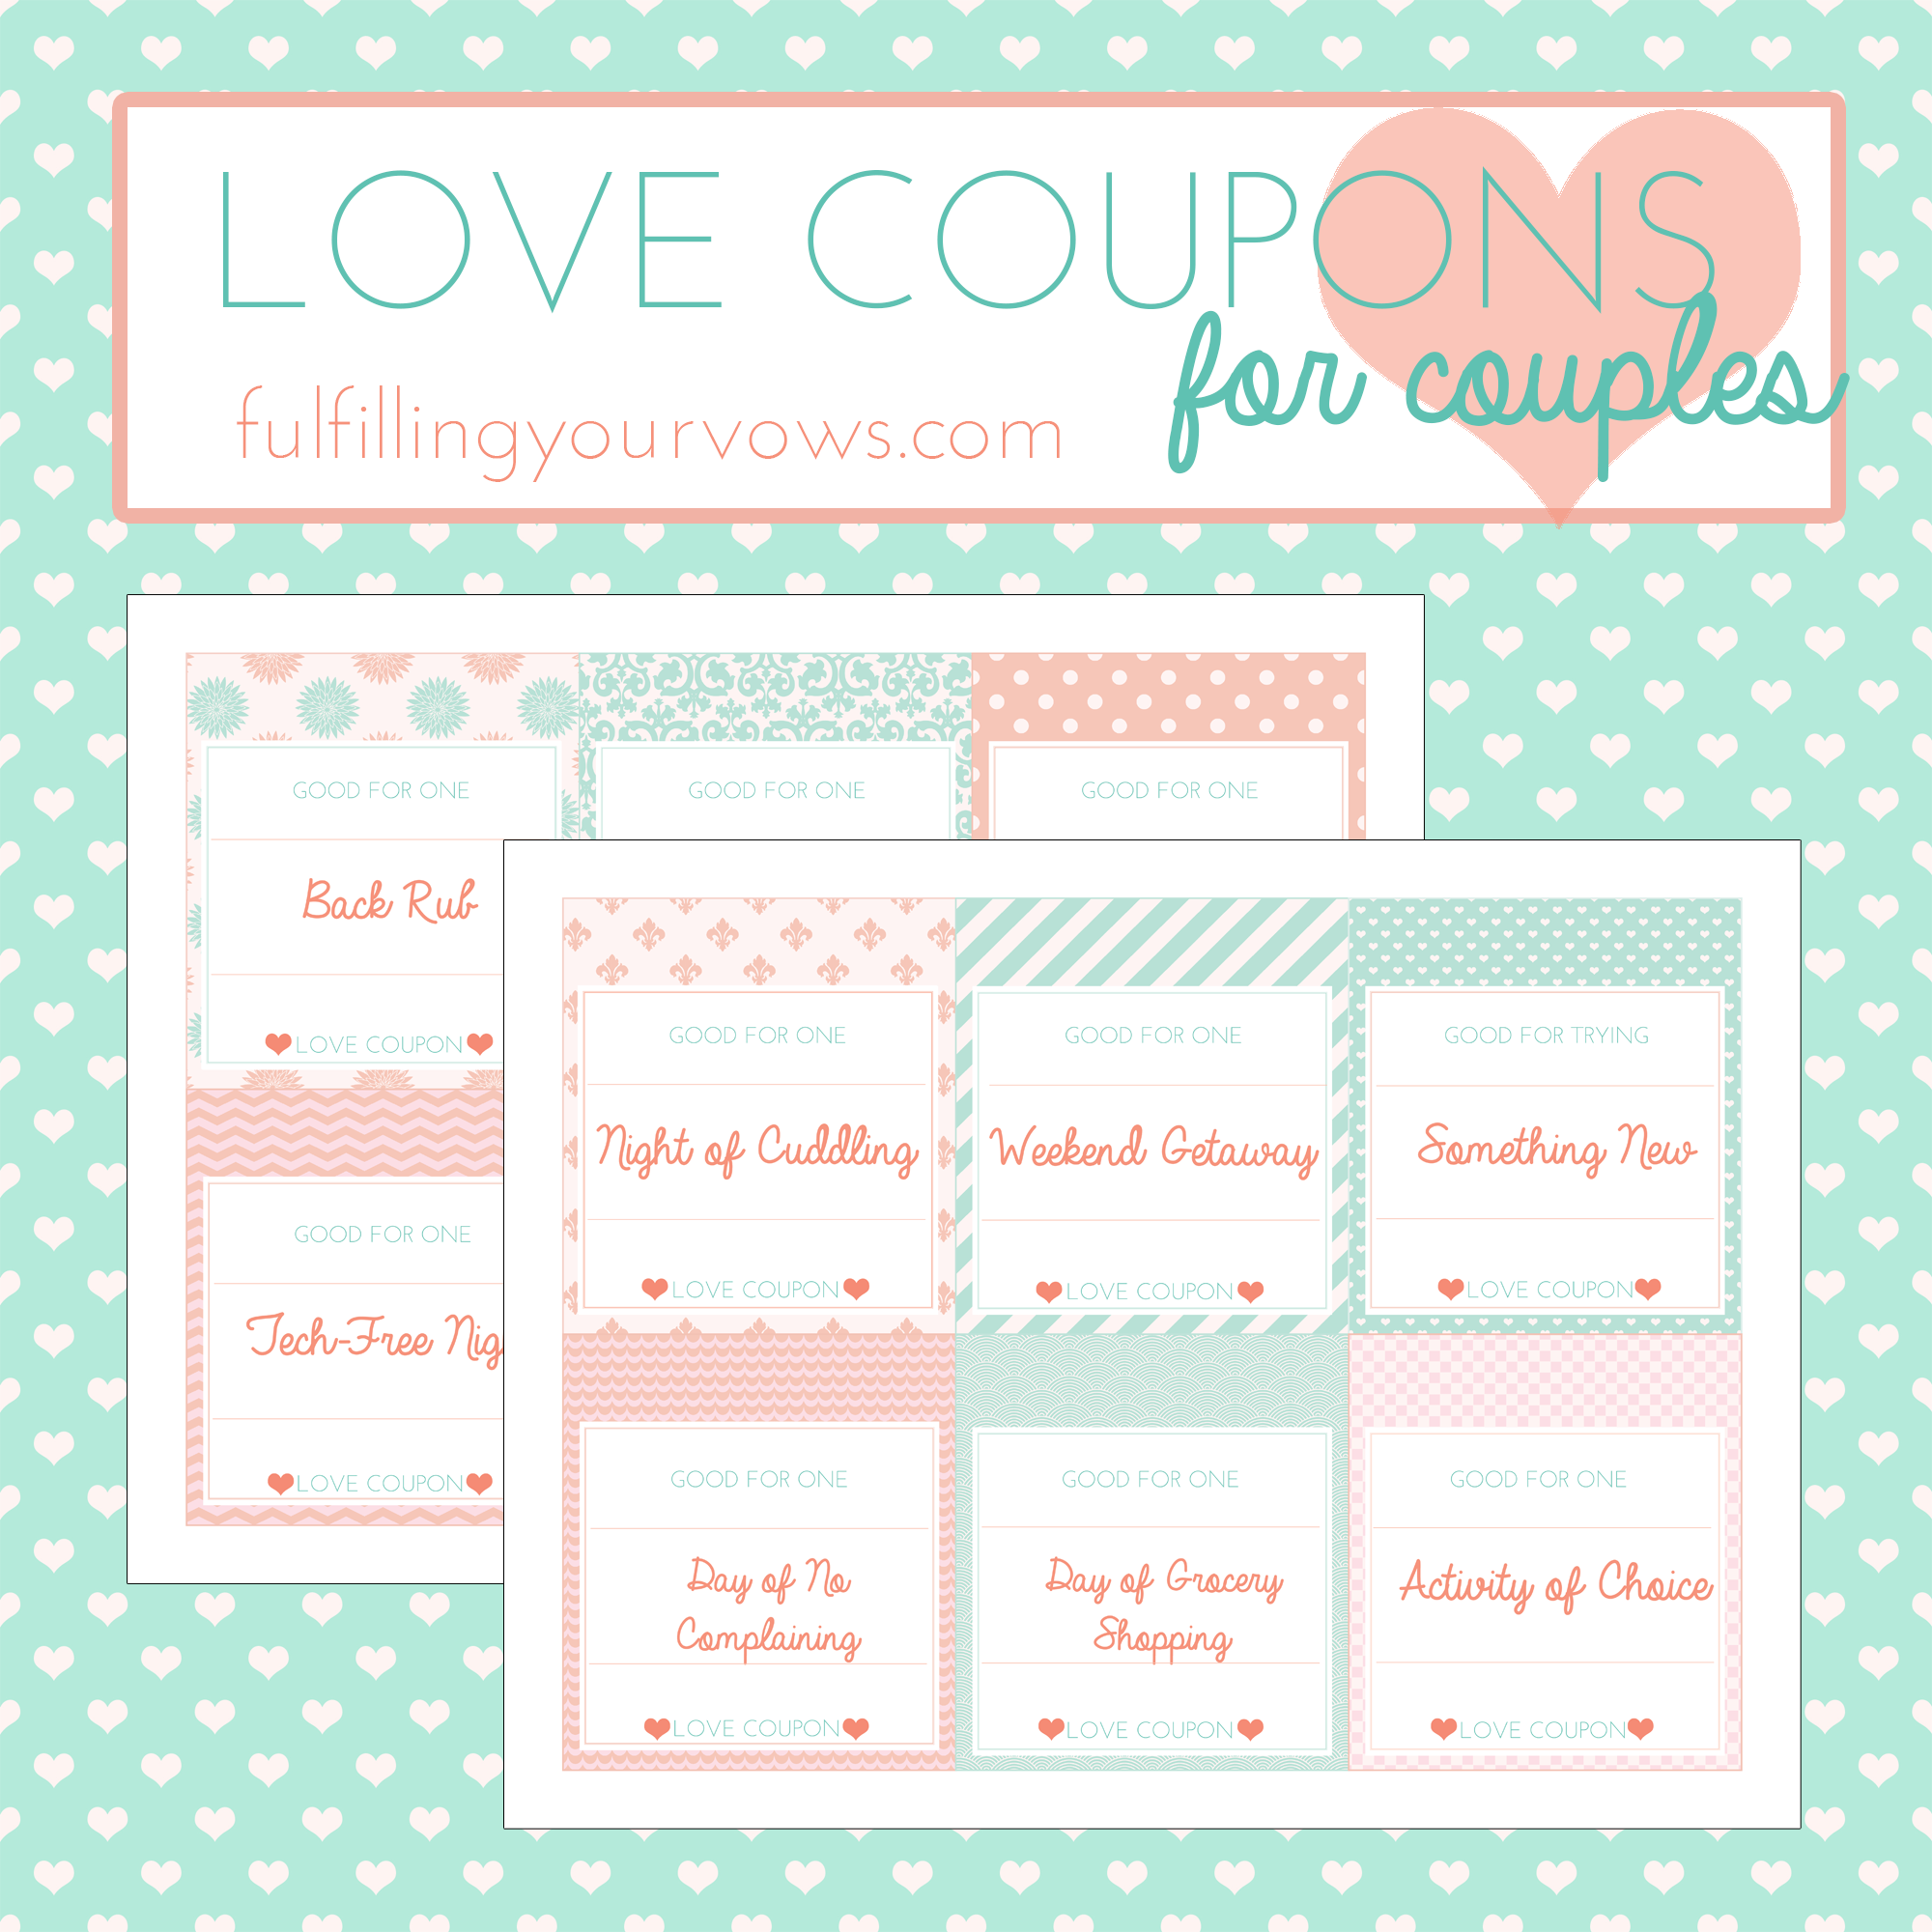 Click Here To Grab Your FREE LOVE COUPONS!